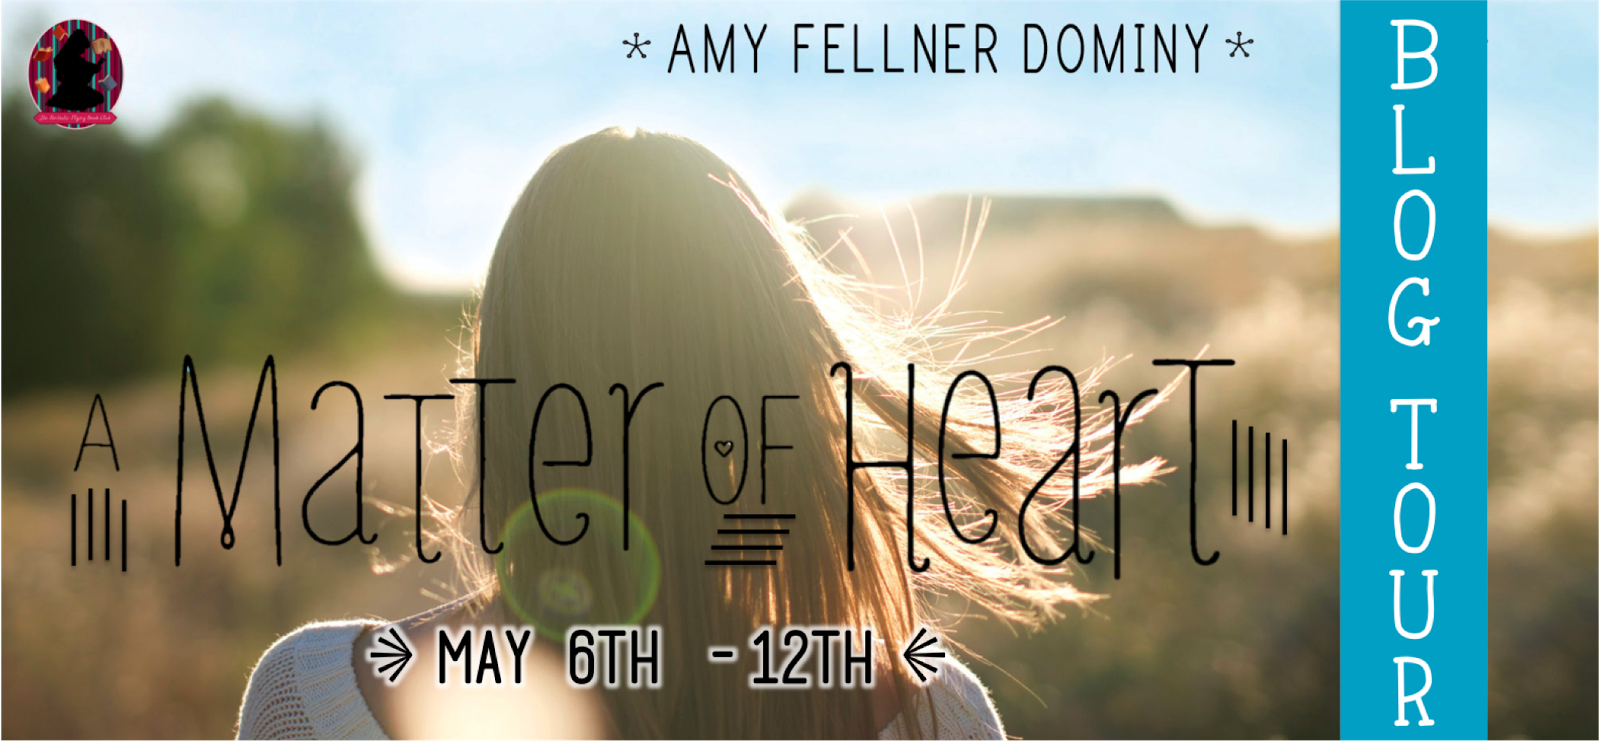 http://fantasticflyingbookclub.blogspot.com/2015/04/tour-schedule-matter-of-heart-by-amy.html